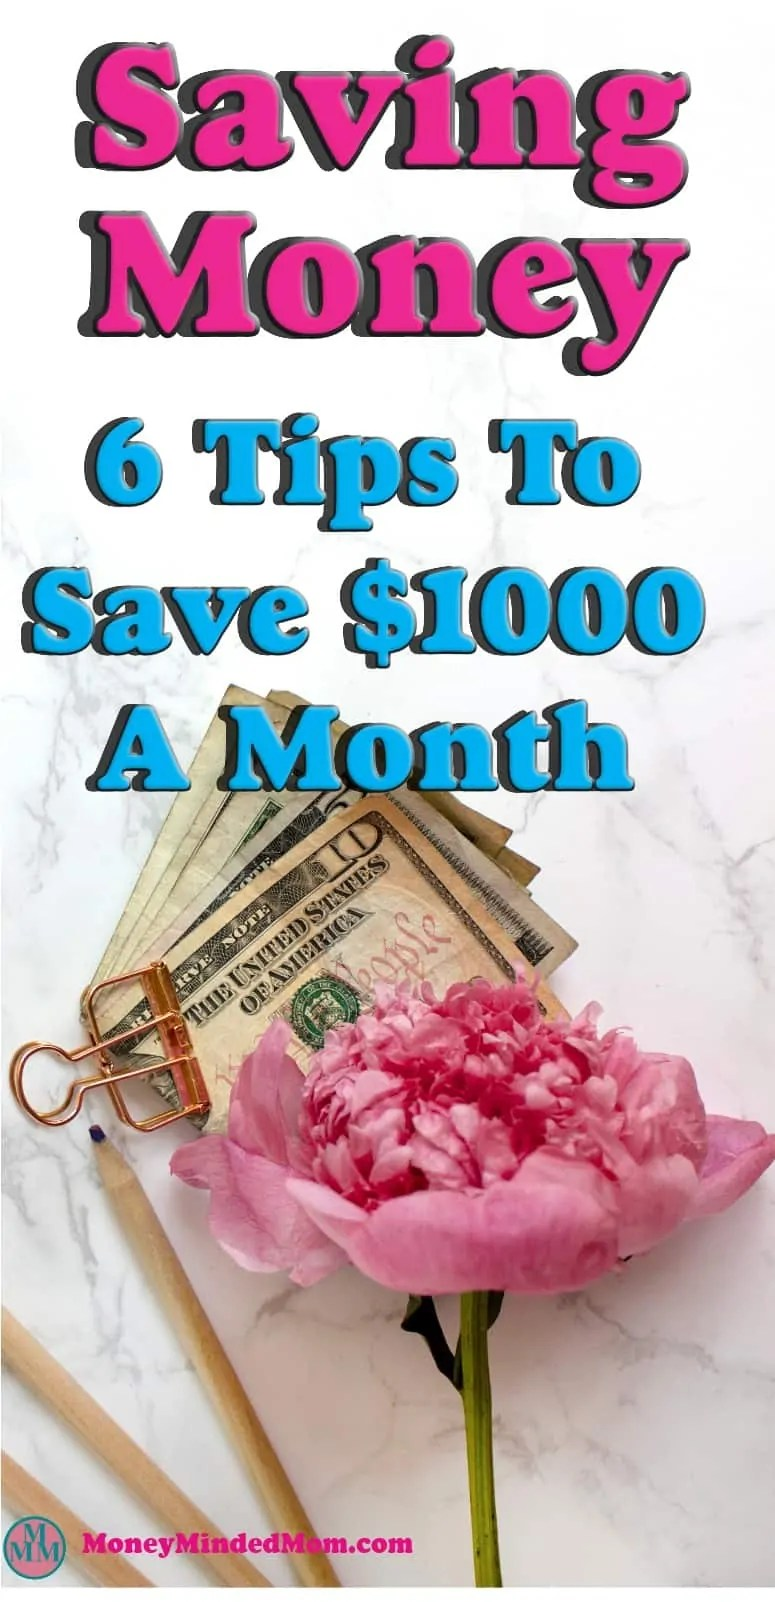 Saving Money ~ Super Simple Ways to Save $1000 a Month ~ Saving an extra $1000 a month might seem like an impossible task, but it really isn't. Small changes go a long way to saving money, balancing your budget and managing money. Read on to learn how small changes can really add up to a huge amount of saving money.